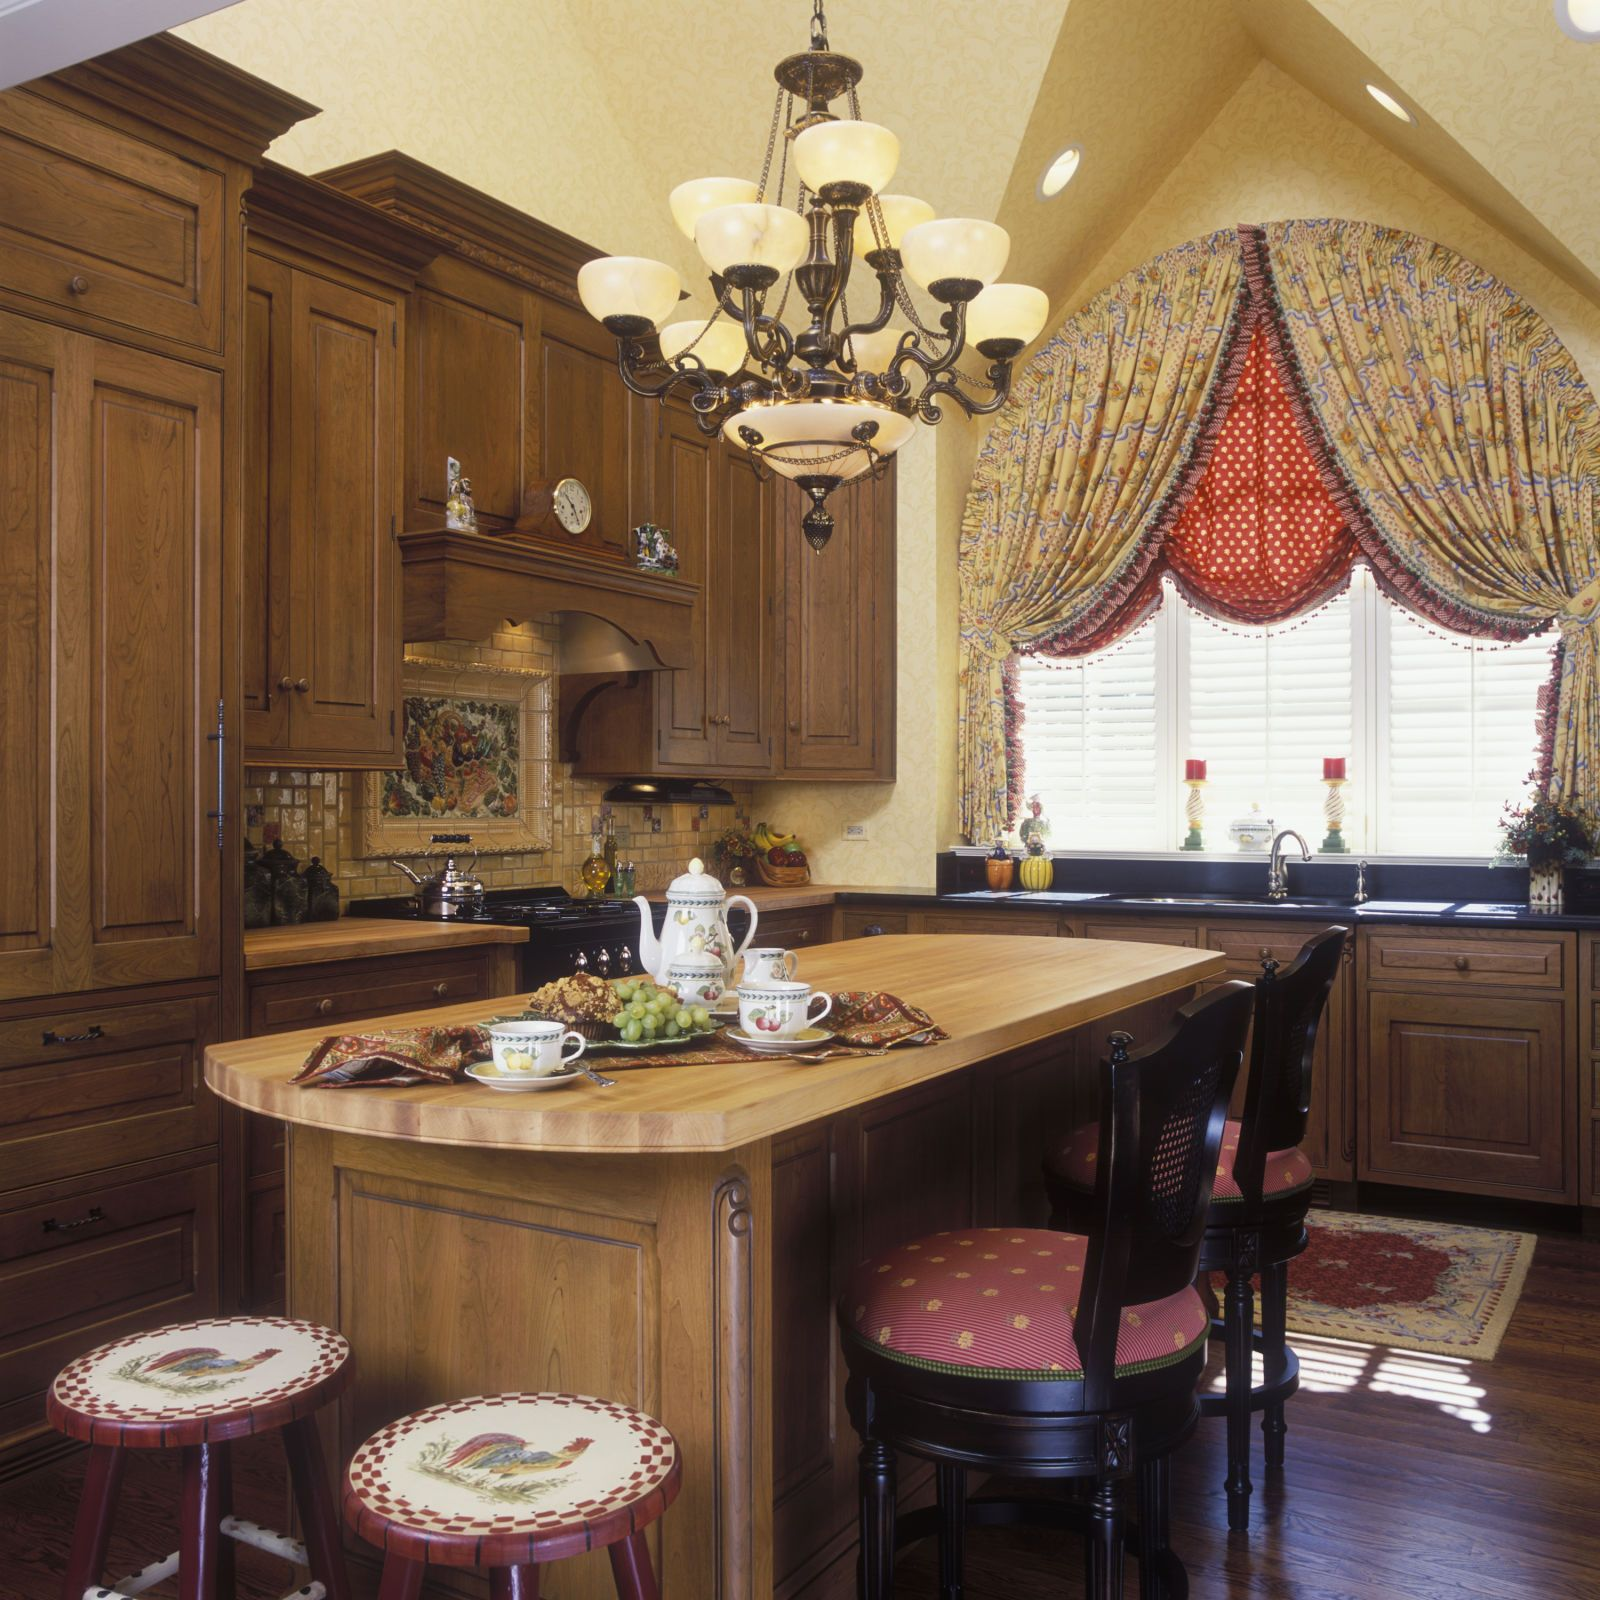 Whatus the difference a french country kitchen vs english country